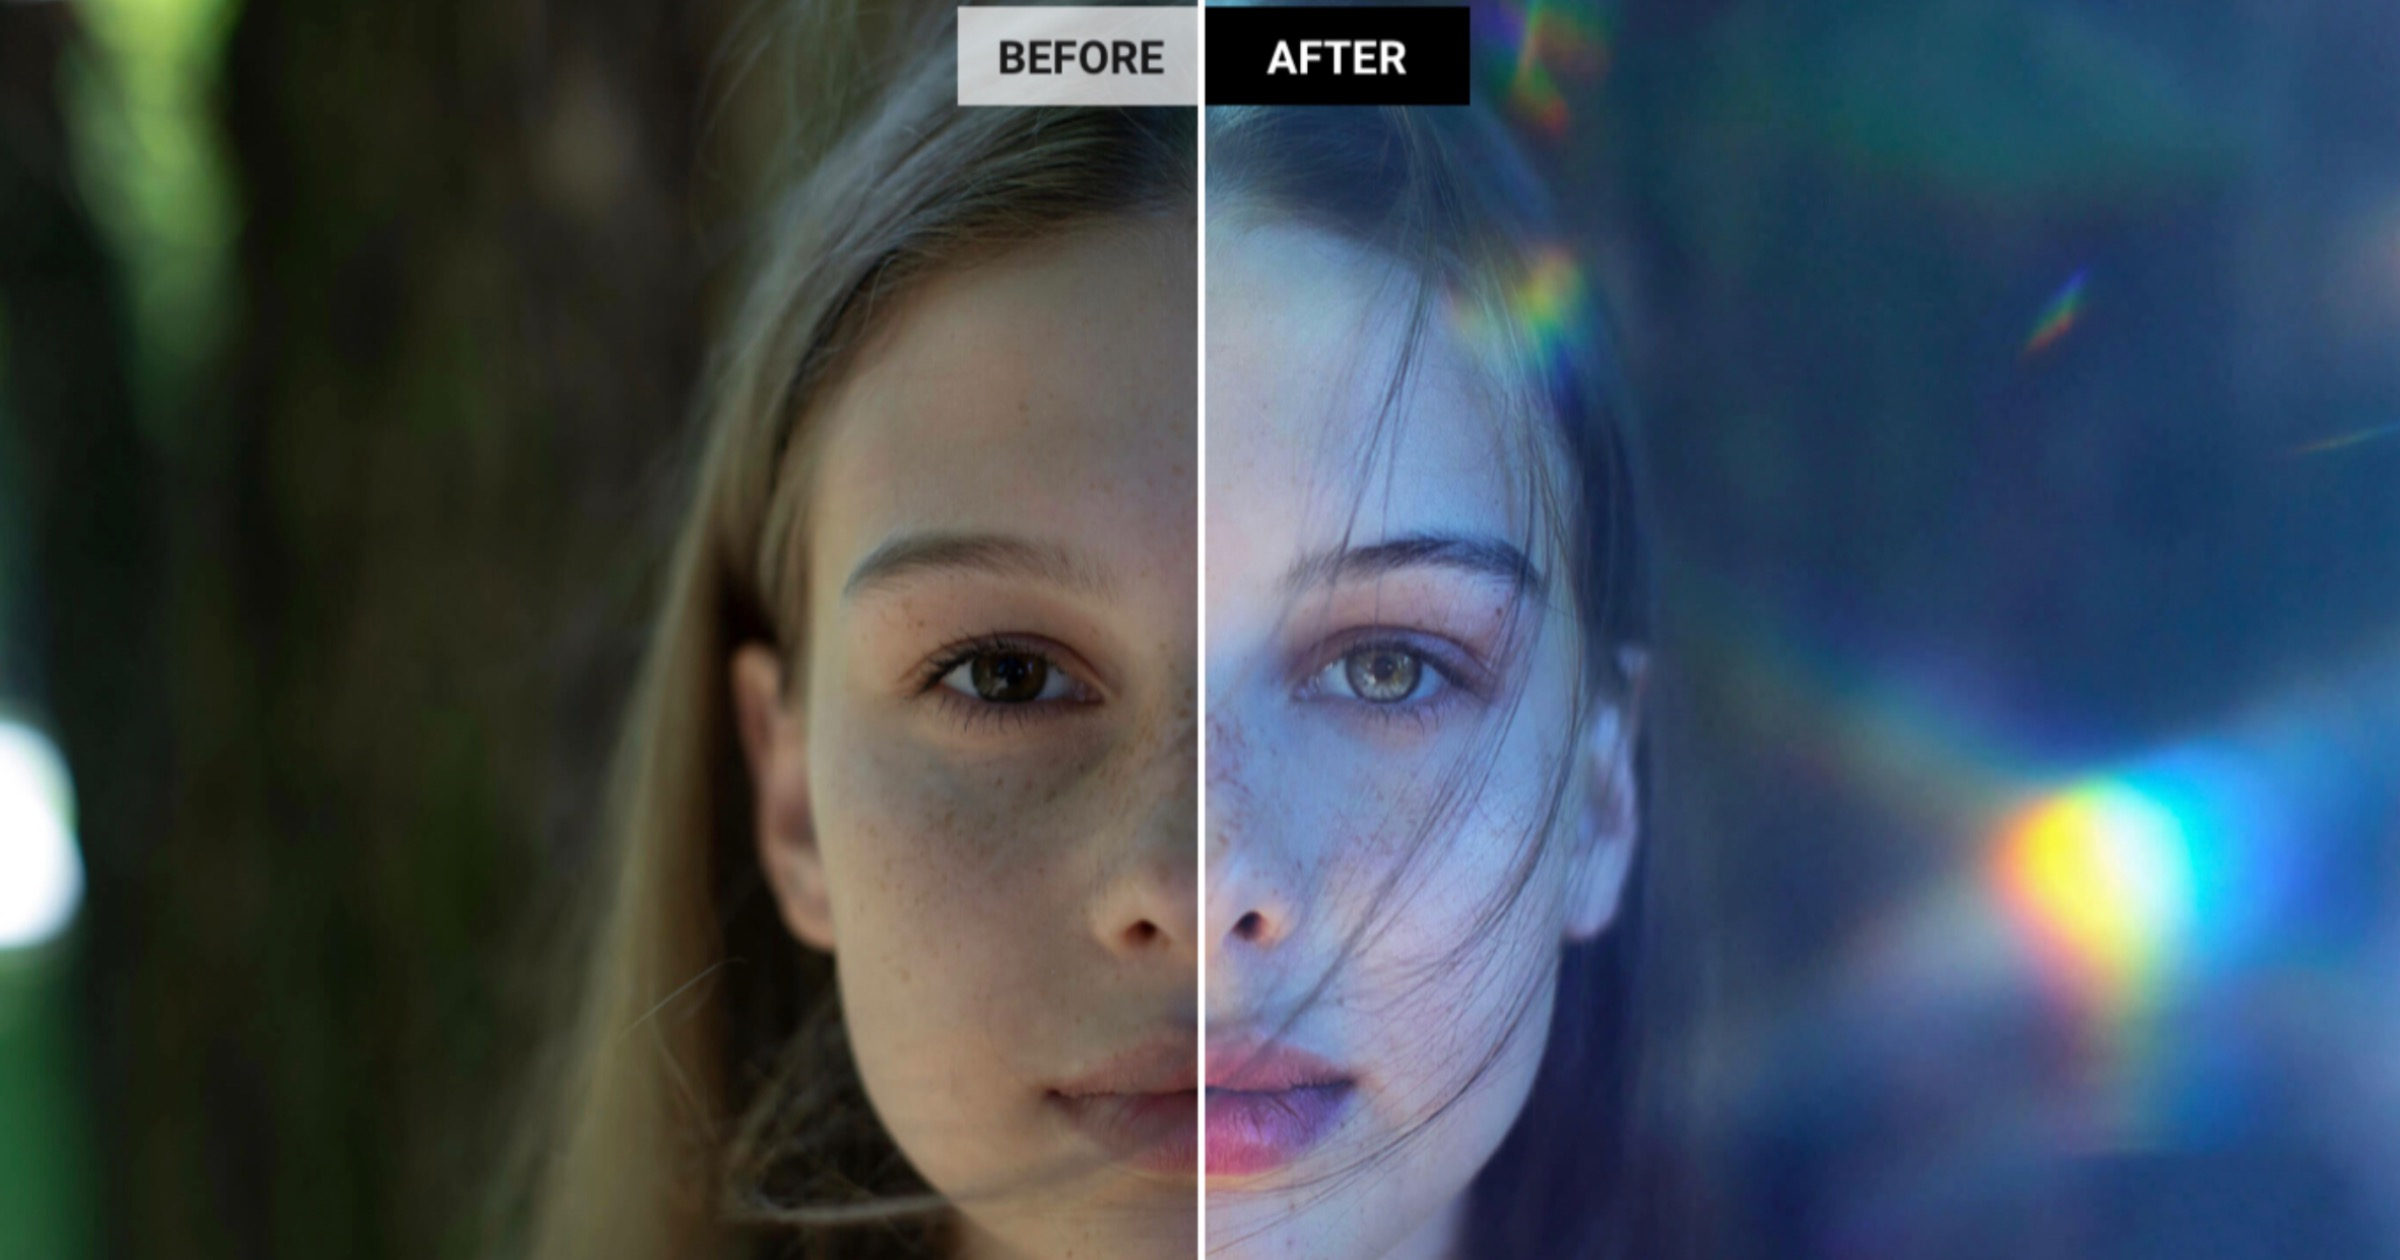 Before and after comparison of a photo edited with Luminar AI.